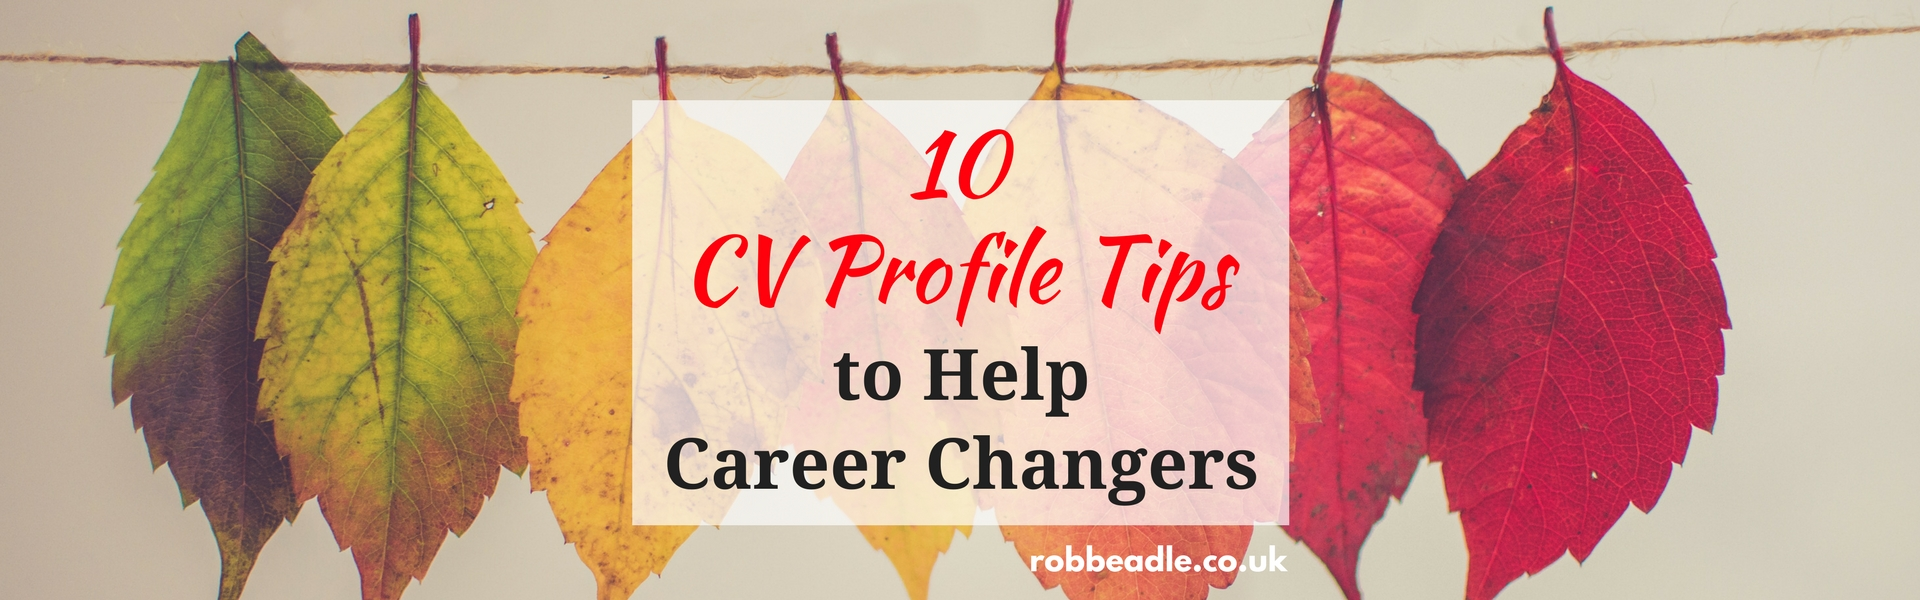 Leaves changing colour - cv profile tips to help career changers